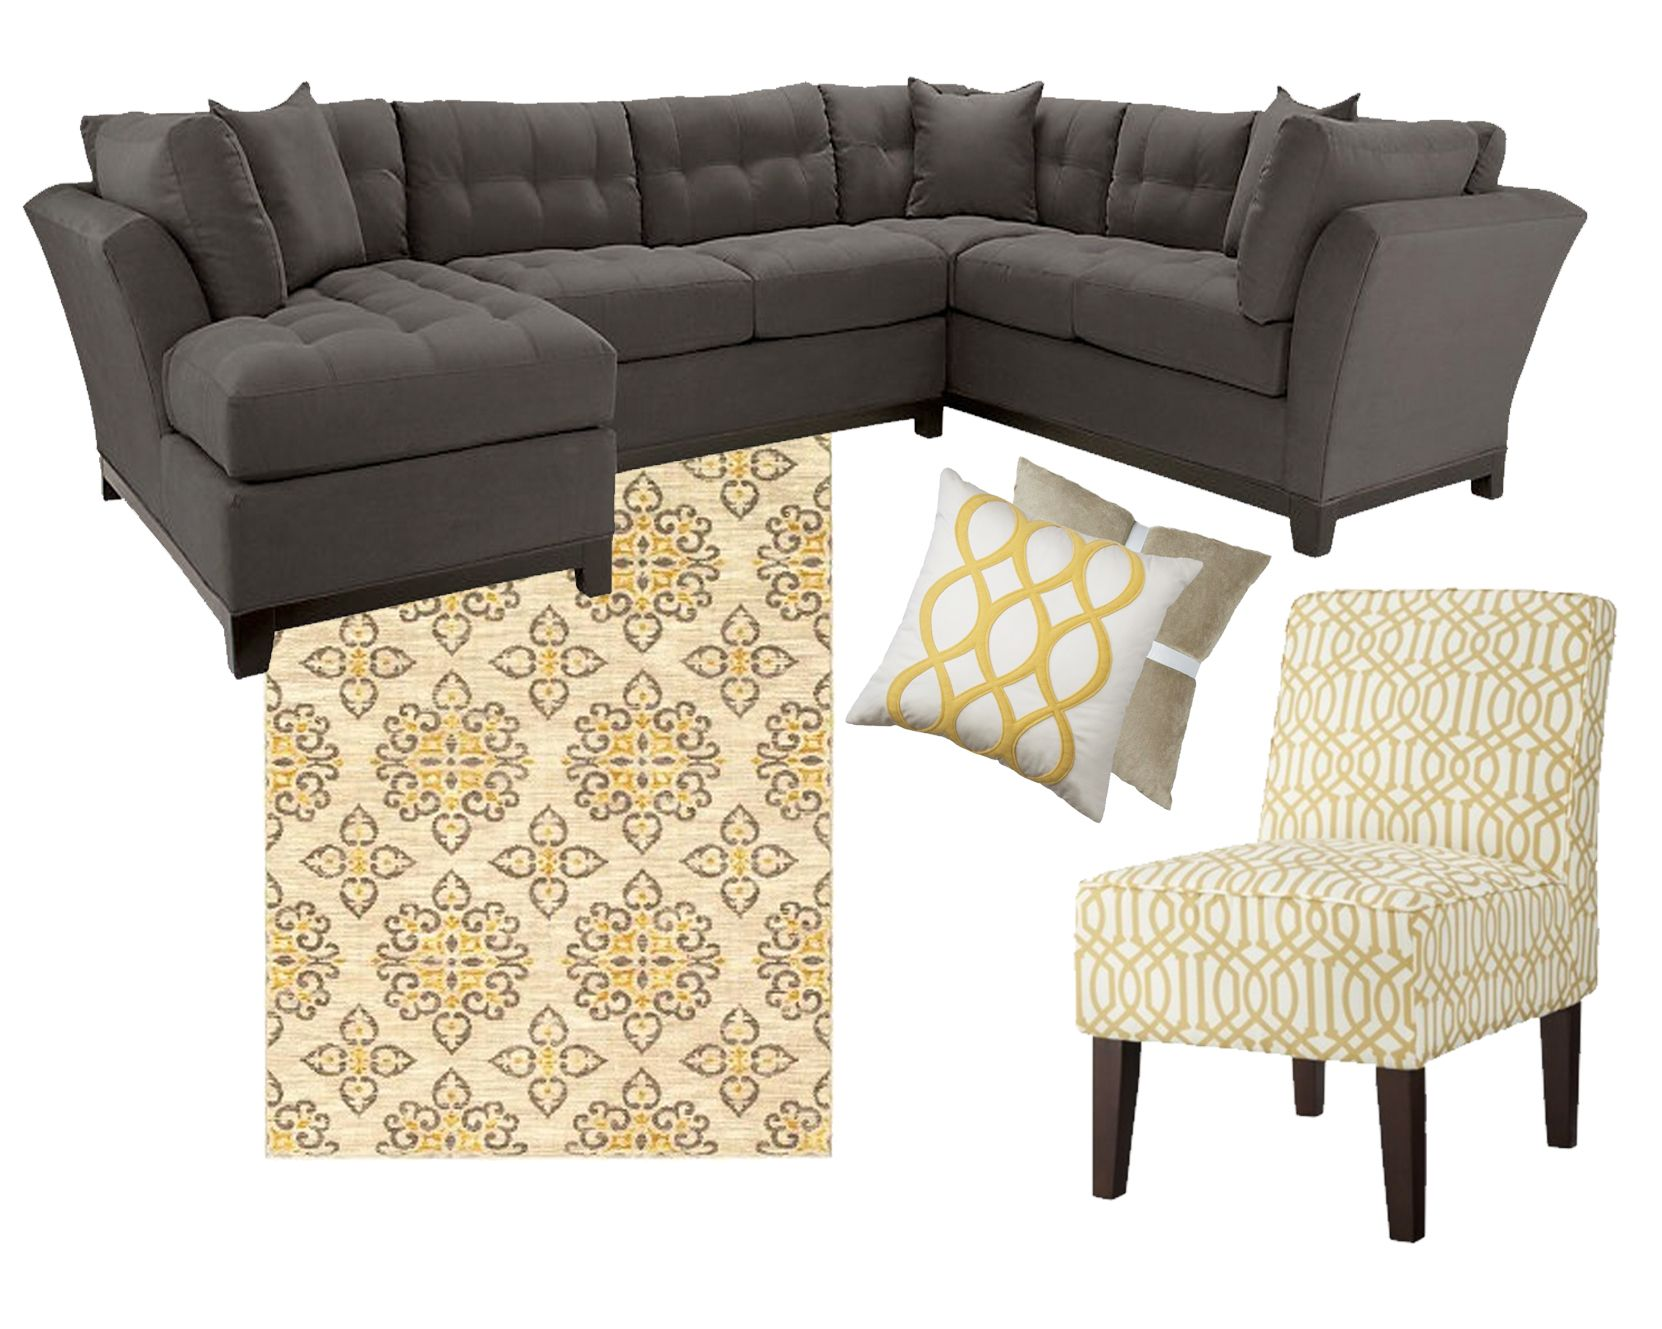 Sofa Sectional Rooms To Go Everything Else Target Target